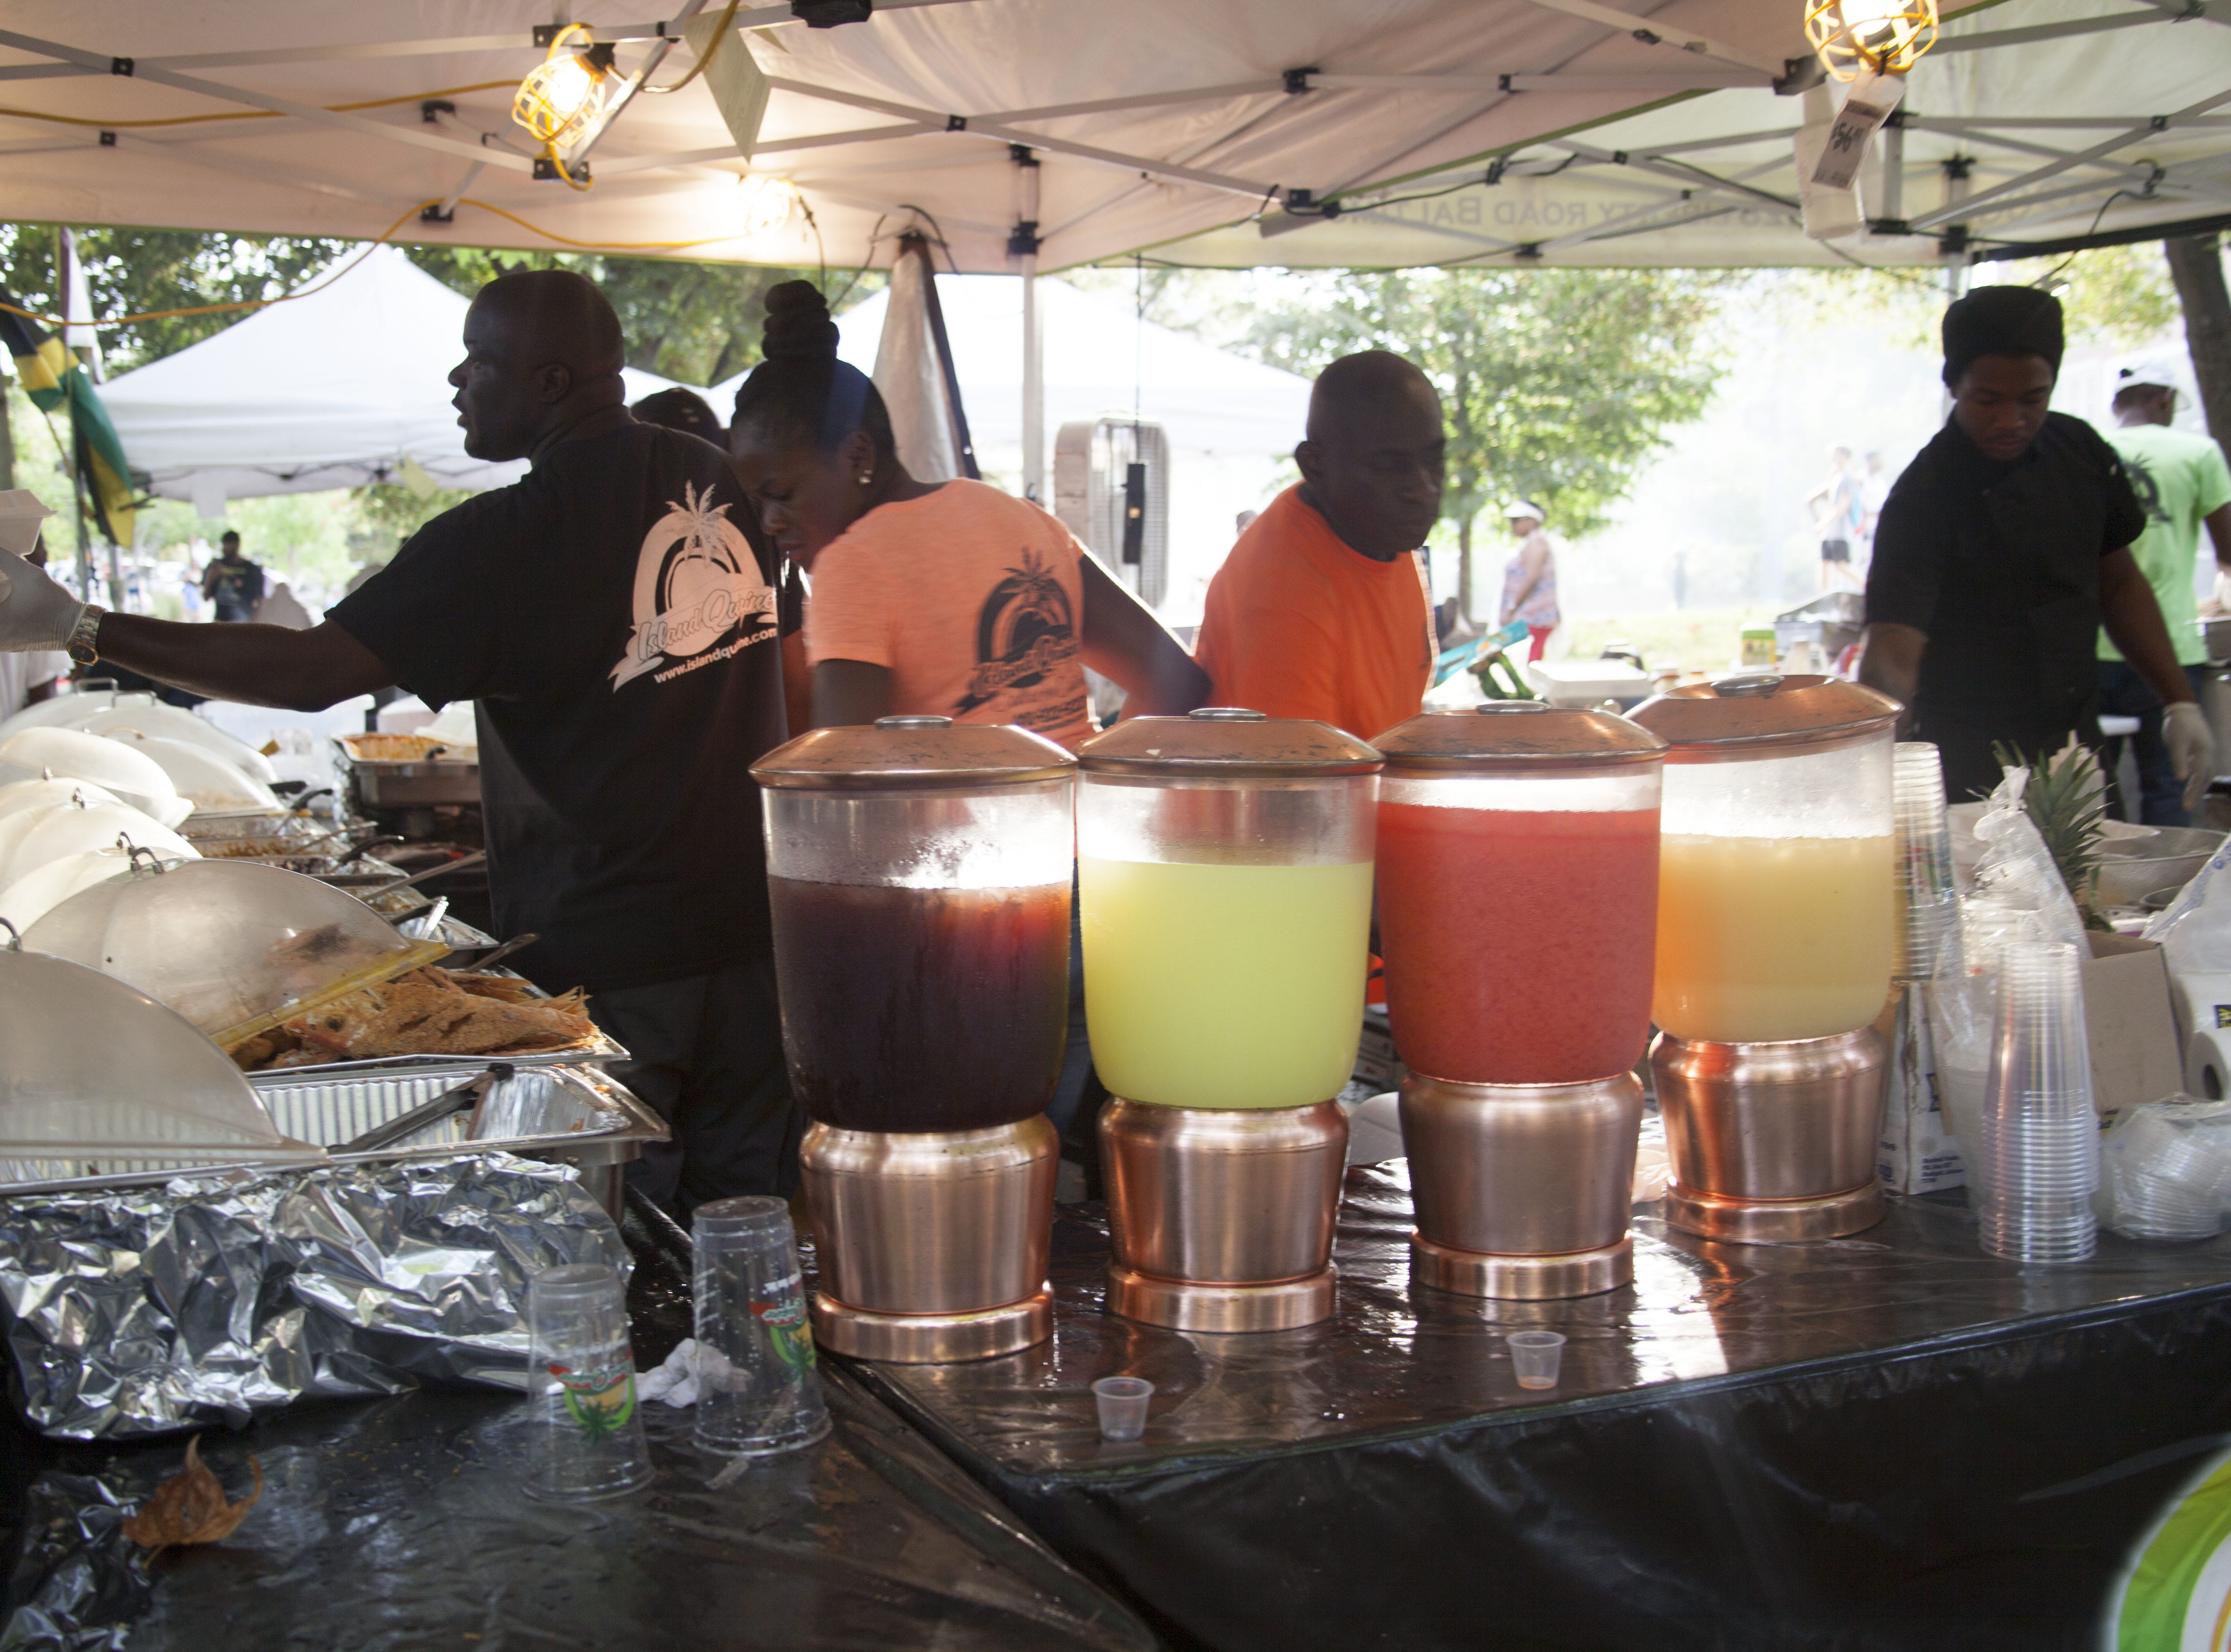 Island Quizine serves Jamaican fare to attendees of the 2018 Goombay Festival at the Roger McGuire Green in Pack Square Park on Sept. 8, 2018.